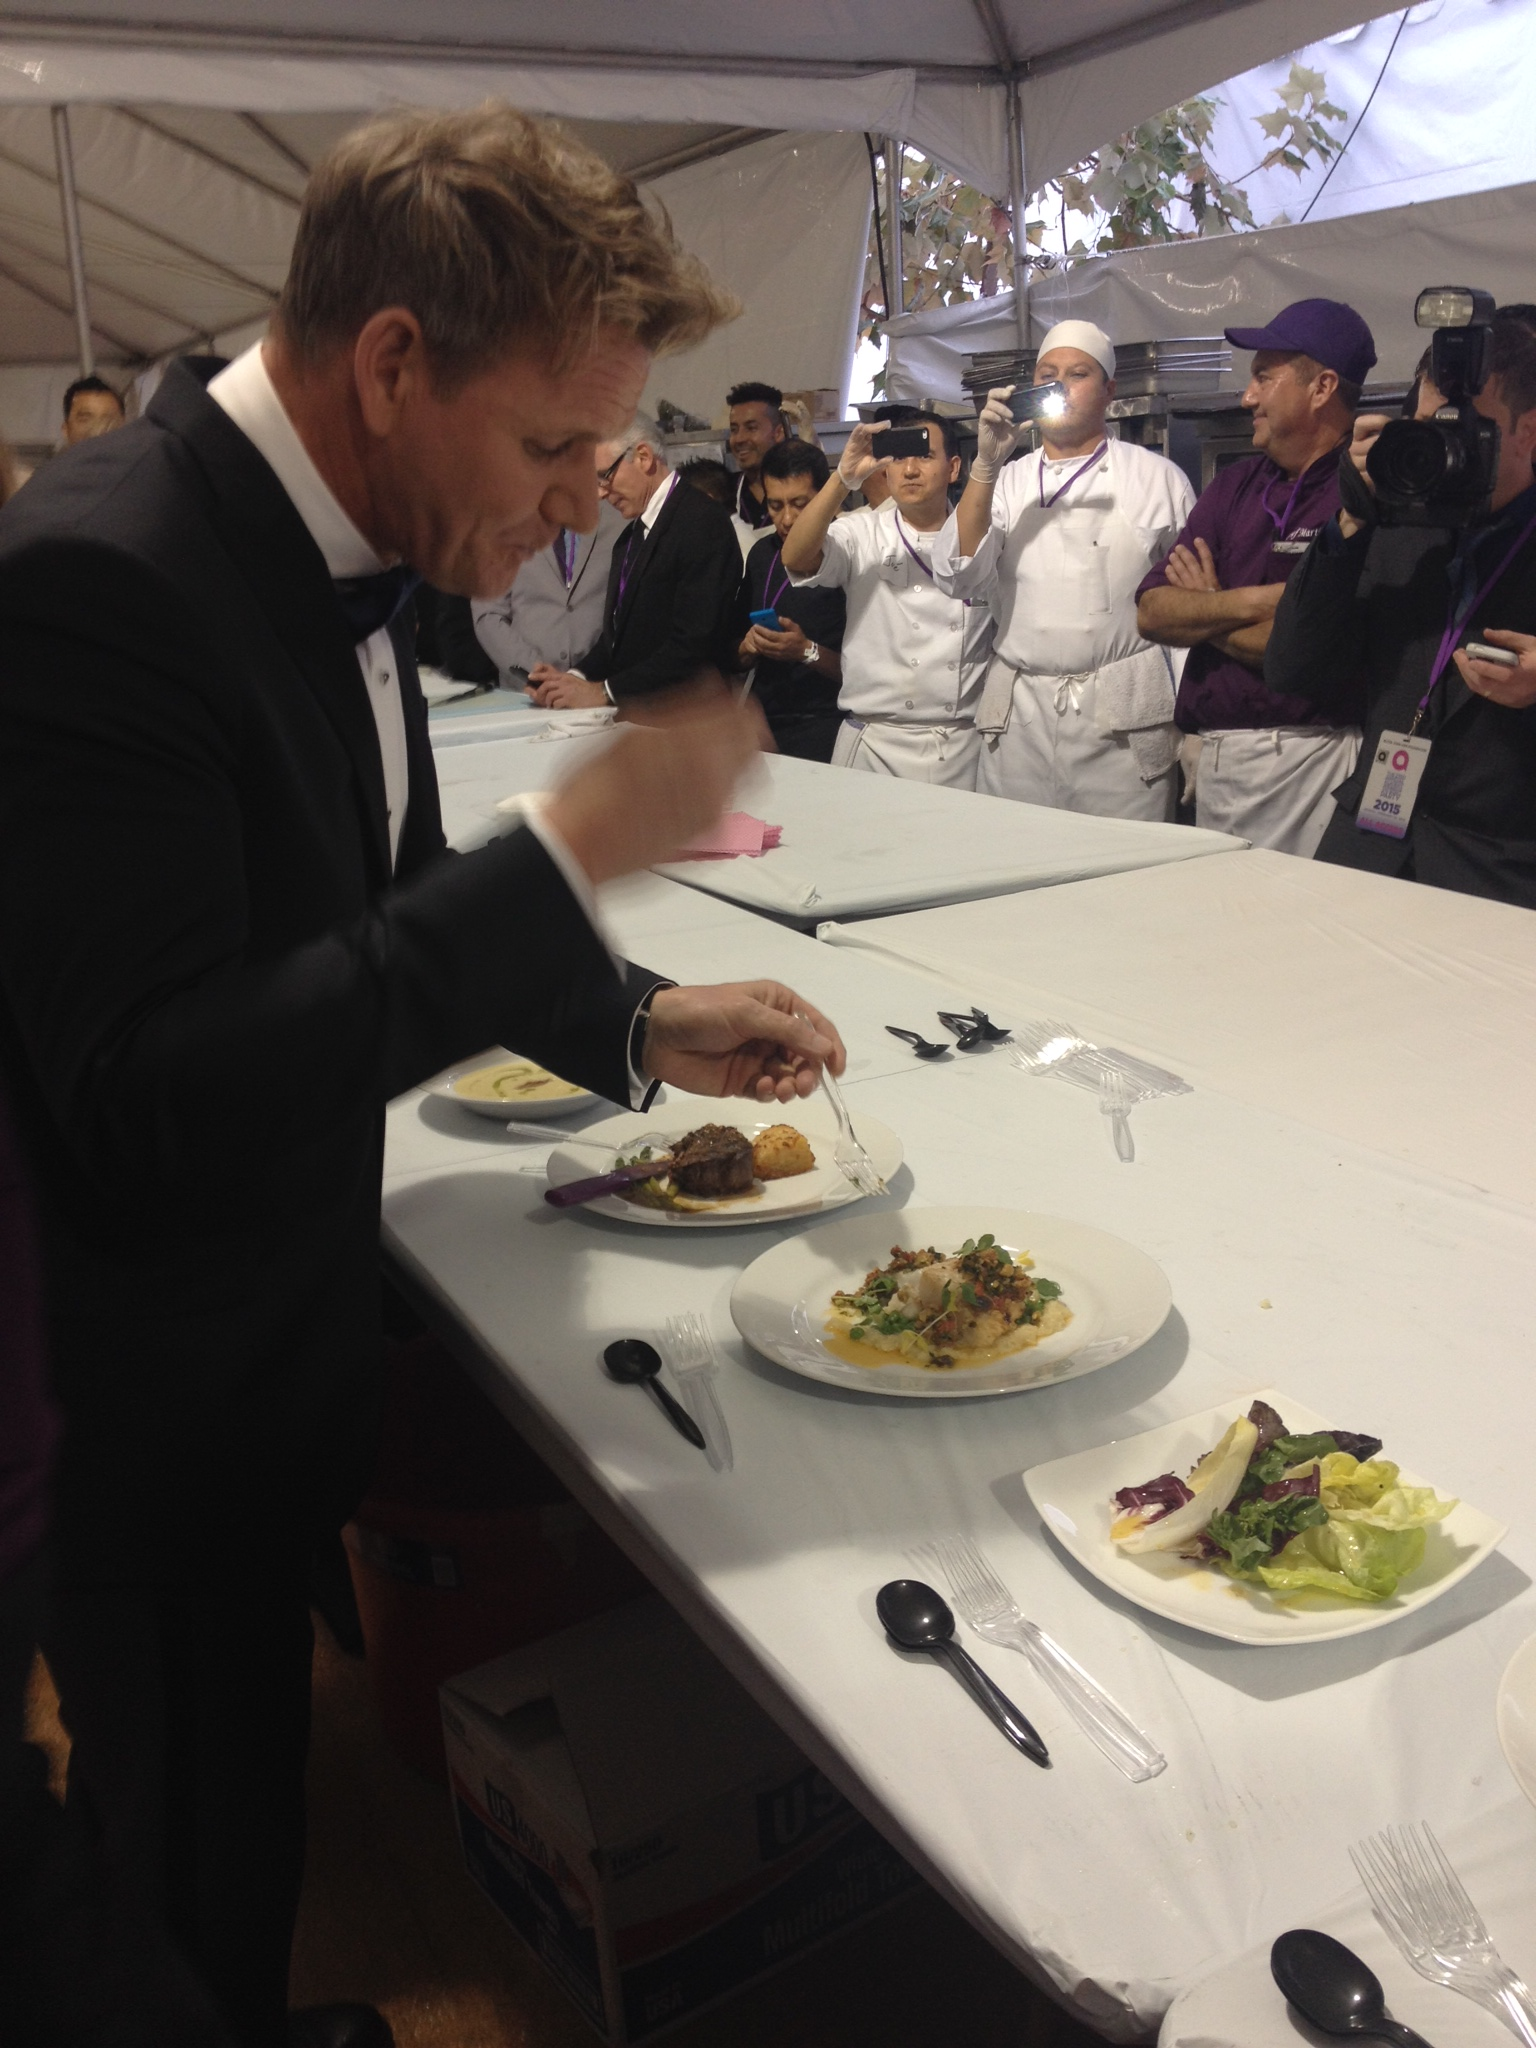 Gordon Ramsay tastes dishes at the 23rd annual Oscars Viewing Party hosted by Elton John and David Furnish.